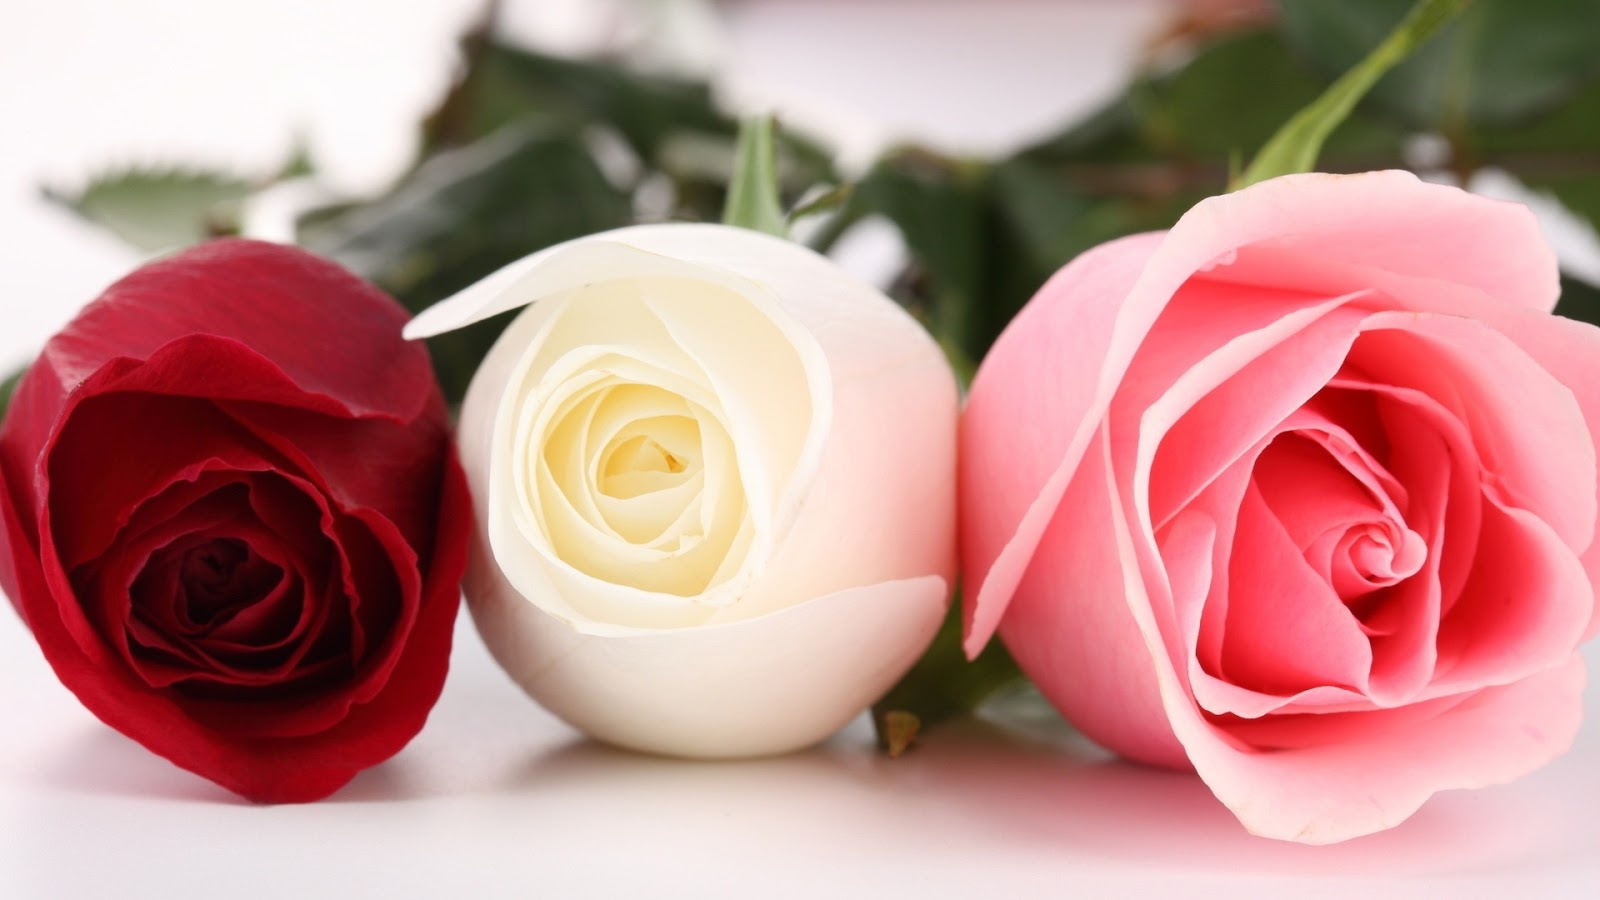 Beautiful Wallpapers For Desktop Of Roses